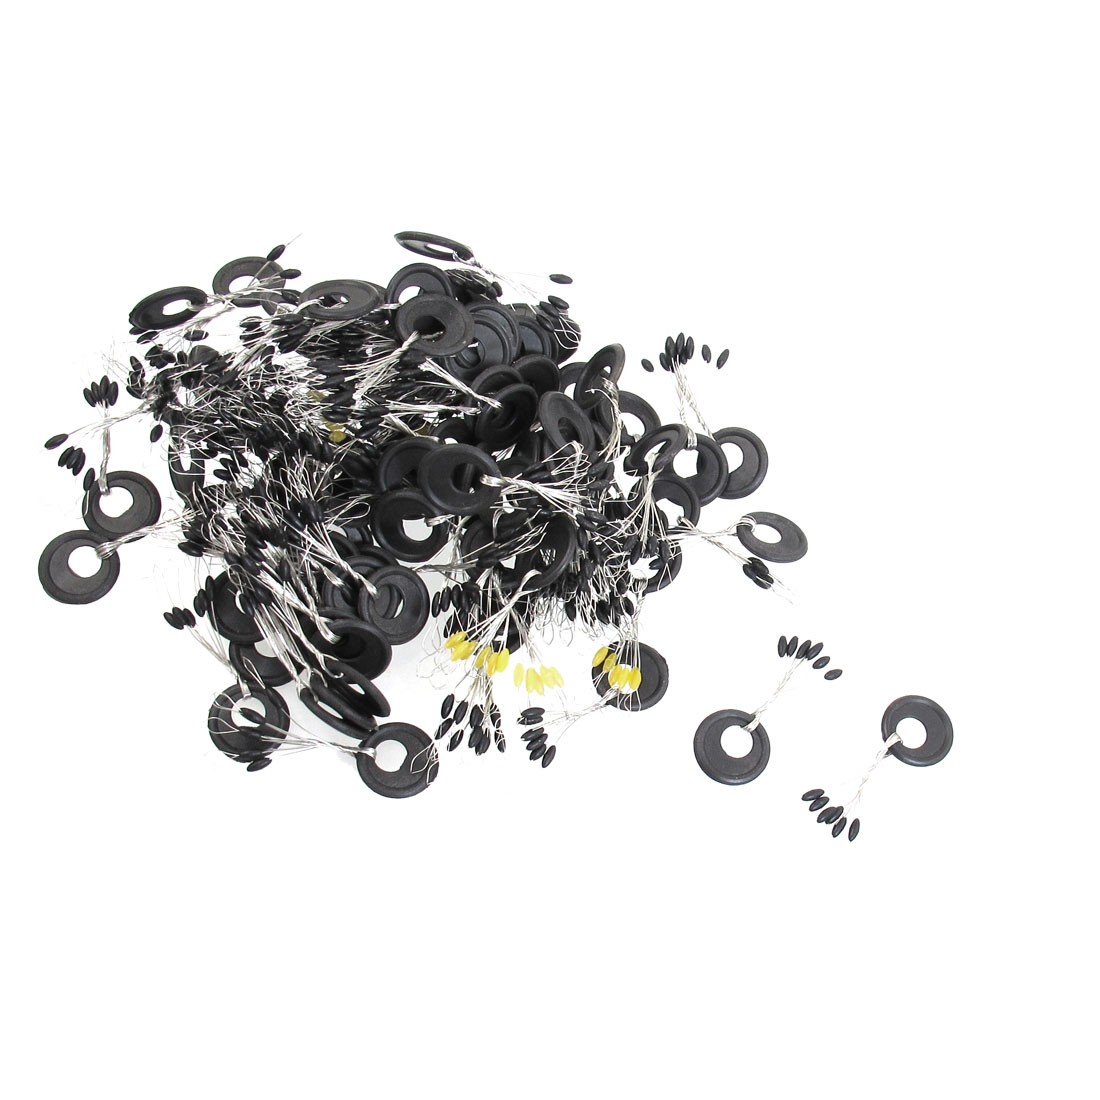 94 Pcs Black Plastic 6 in 1 Oval Shaped Fishing Floaters